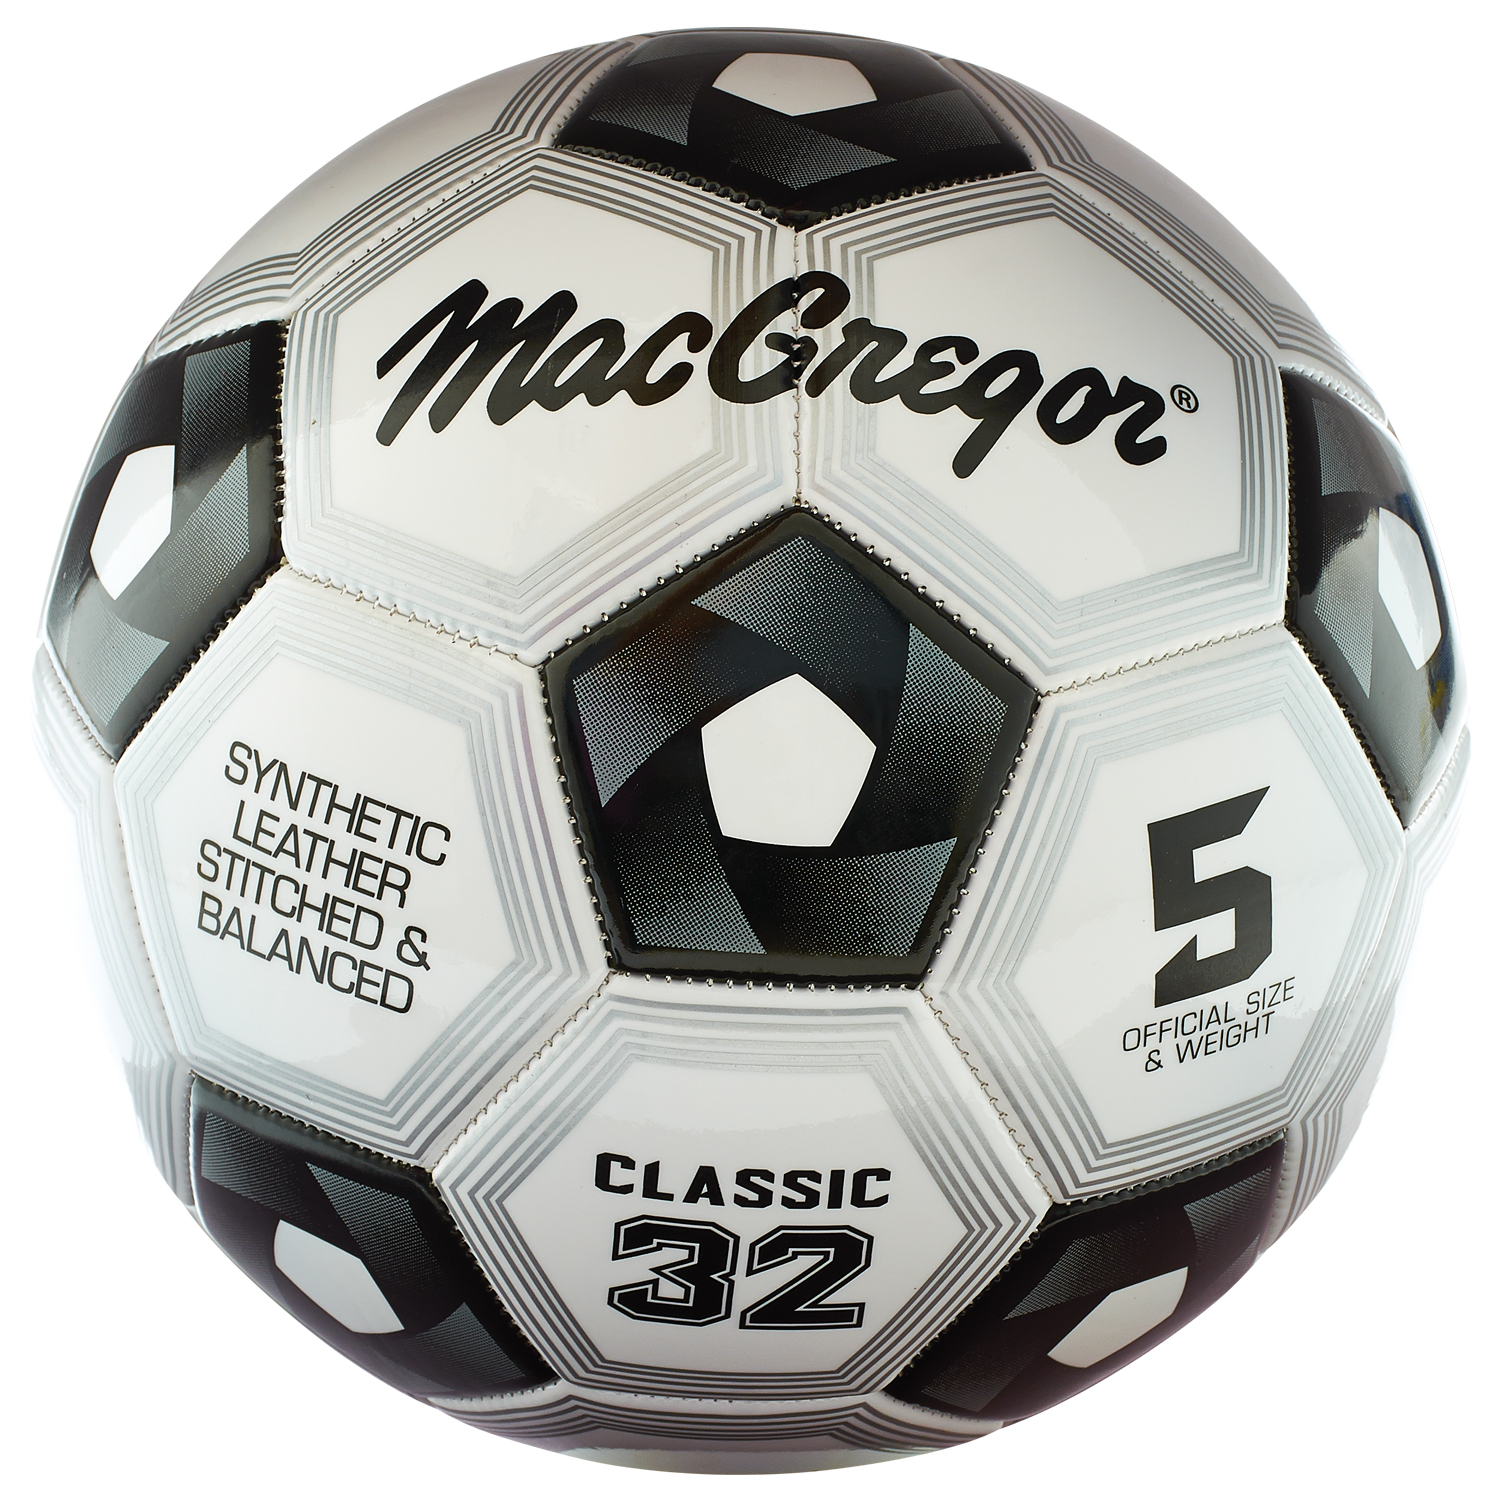 Macgregor size 5 black and white classic soccer ball